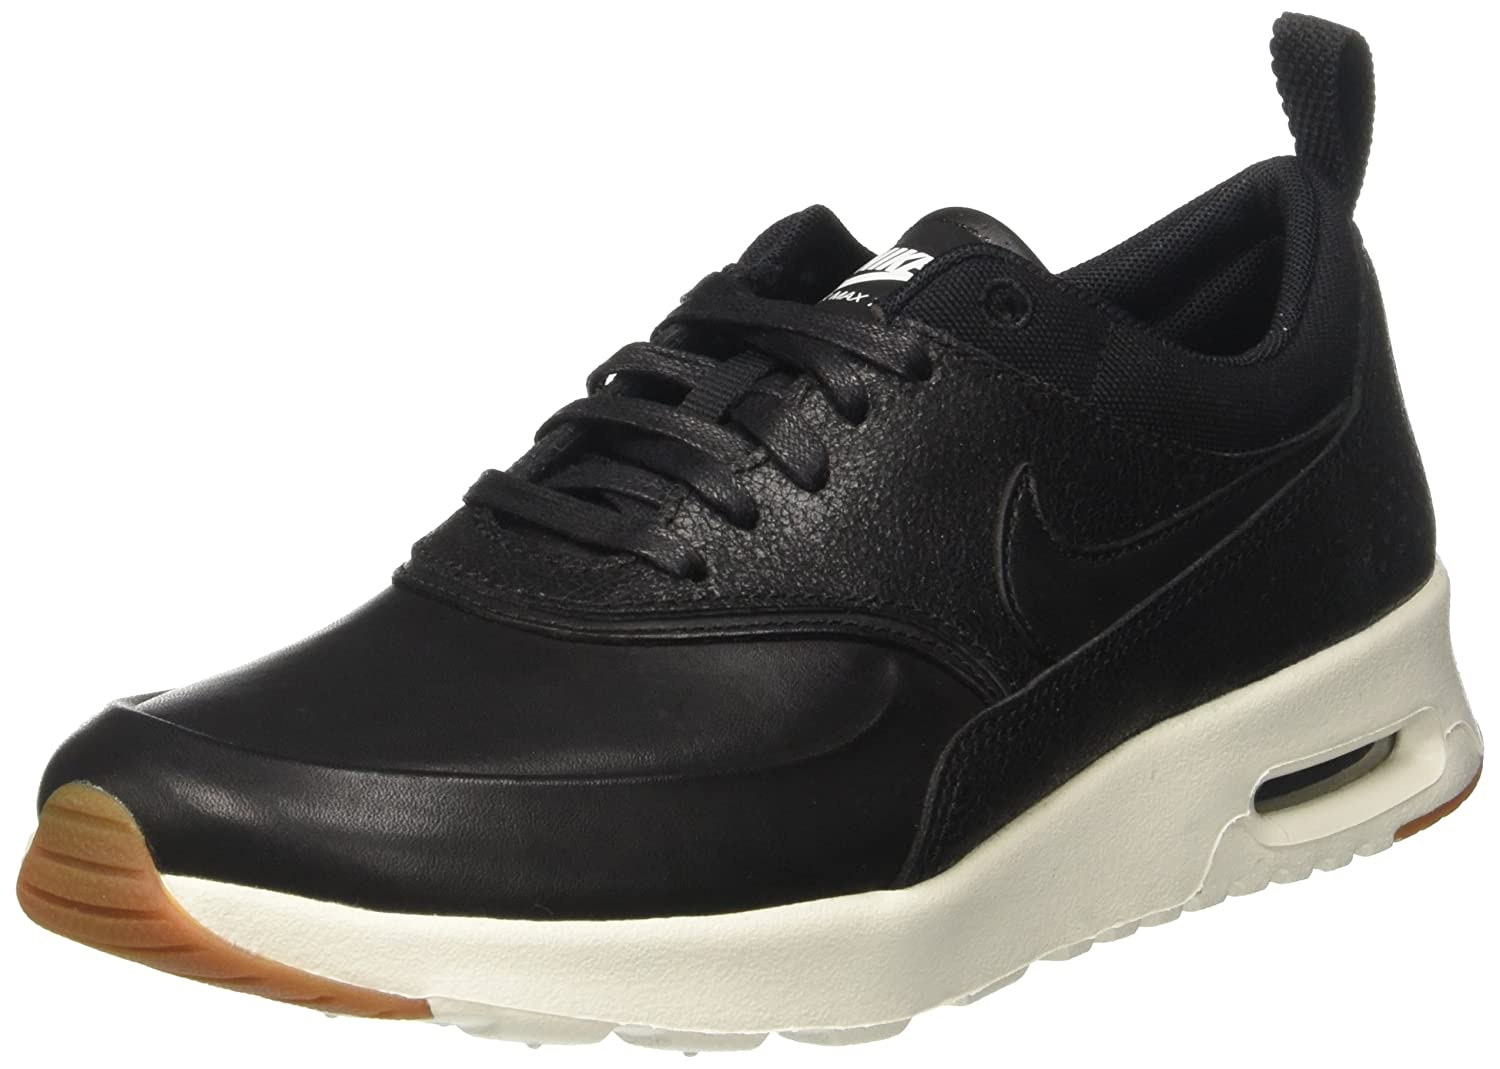 Nike Womens Air Max Thea PRM Low Top Lace Up Running Sneaker, Black, Size 7.5 3W